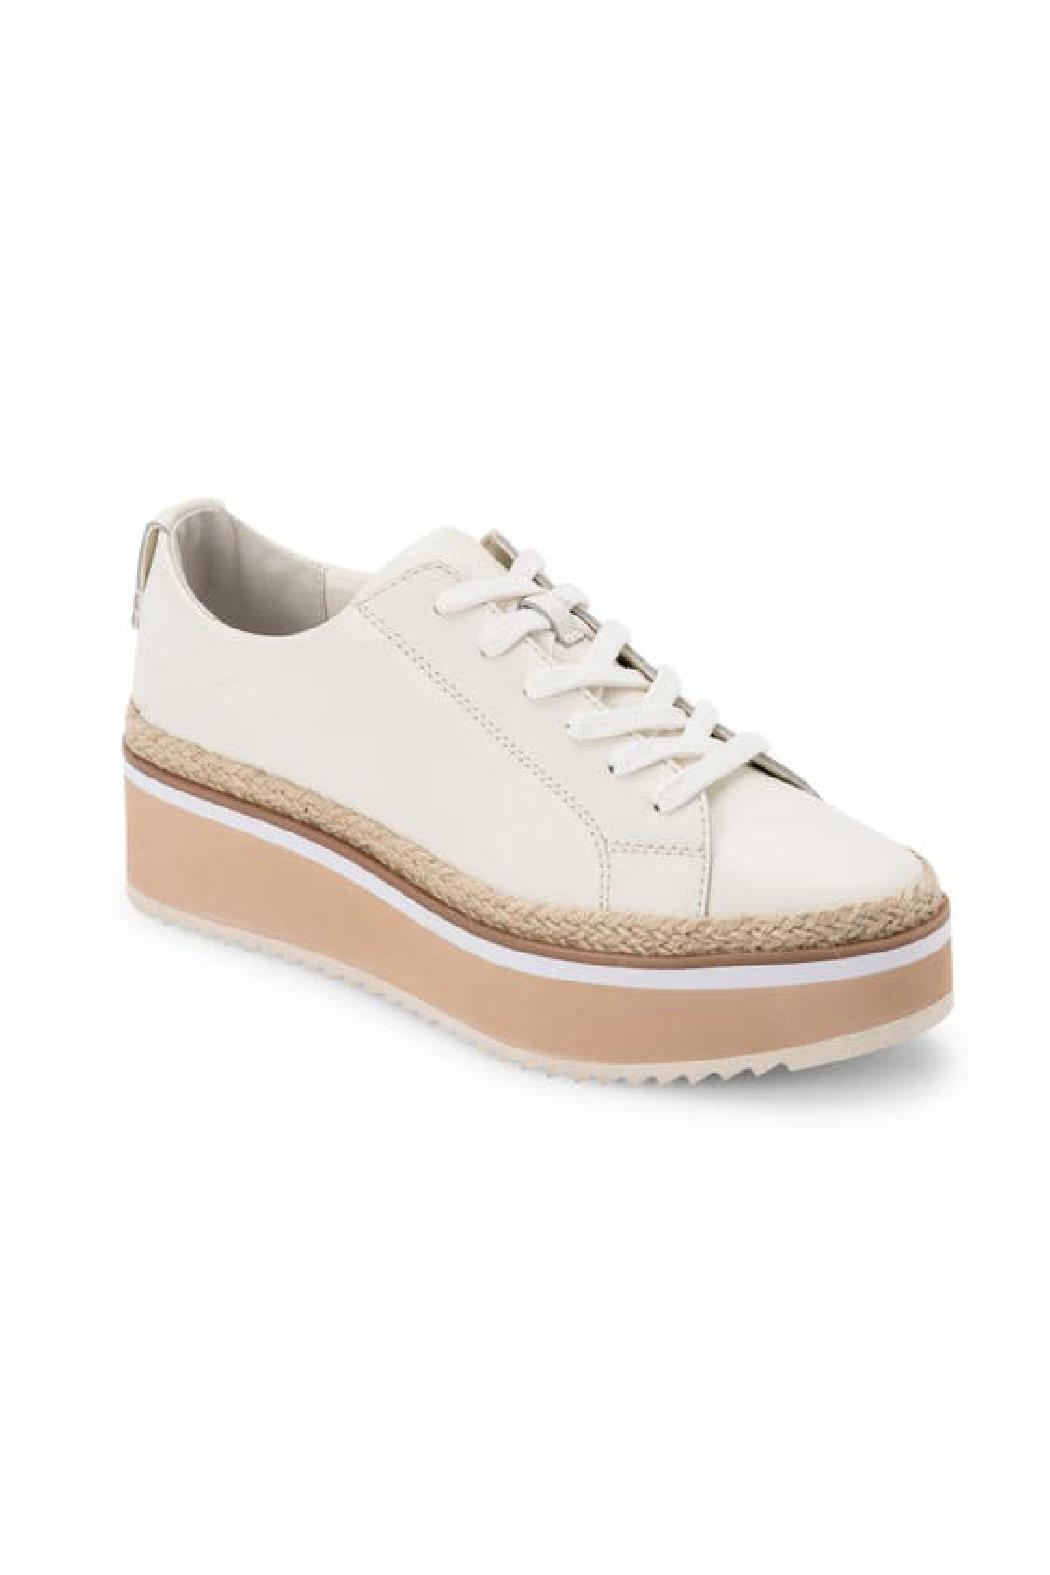 Dolce Vita Tinley Leather Sneaker - Front Full Image